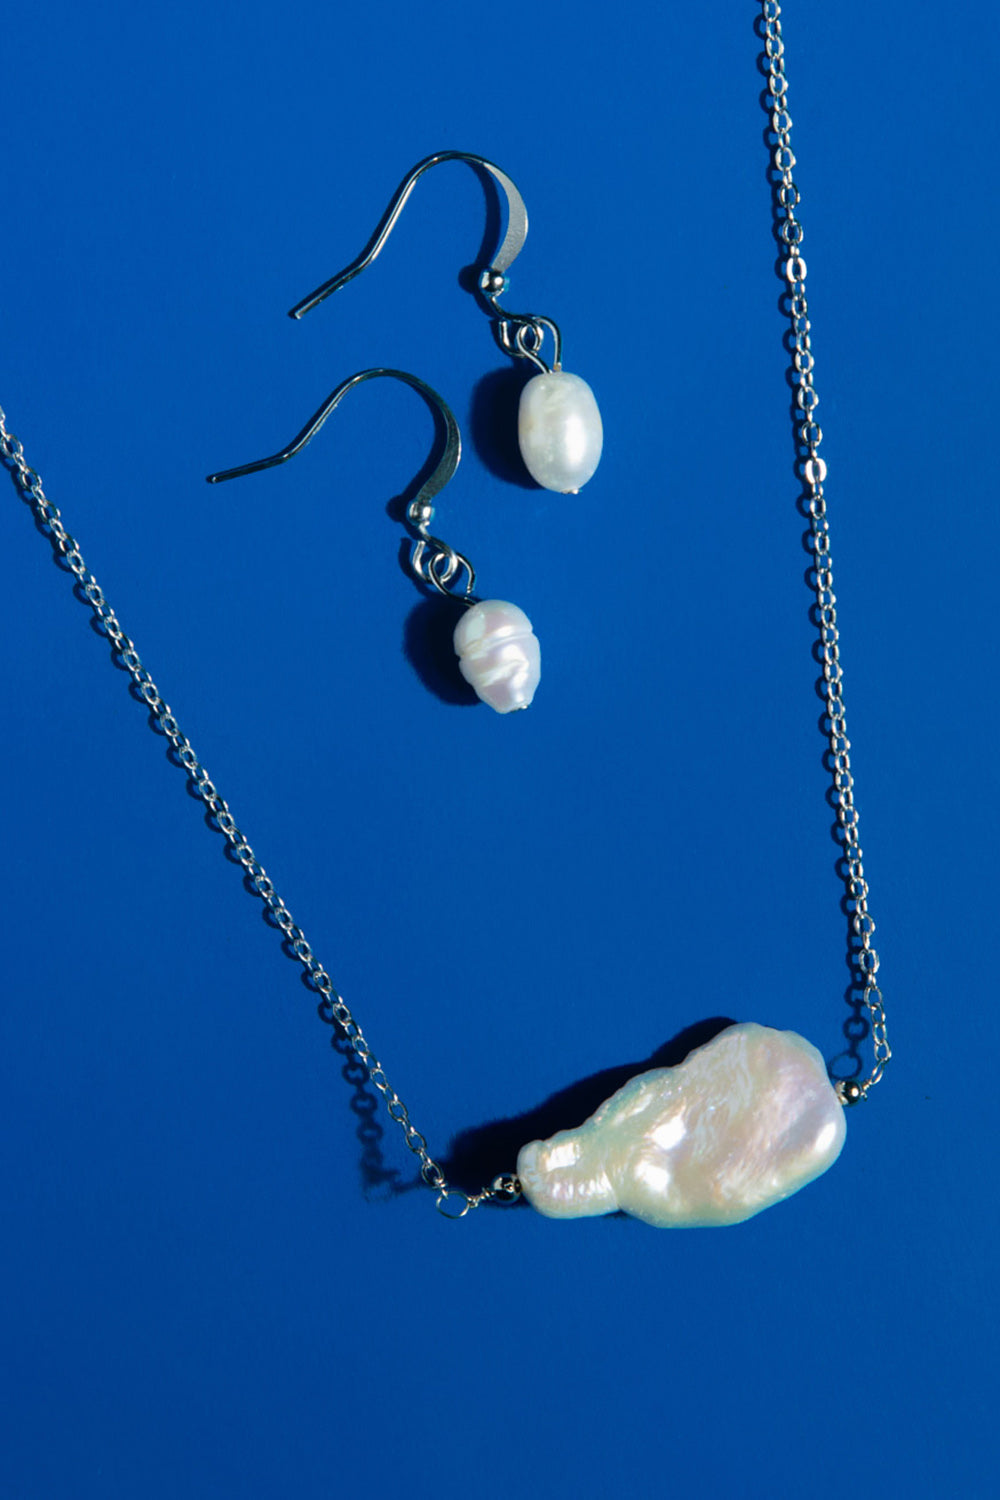 Type 4 Pearl and Prose Necklace/Earring Set